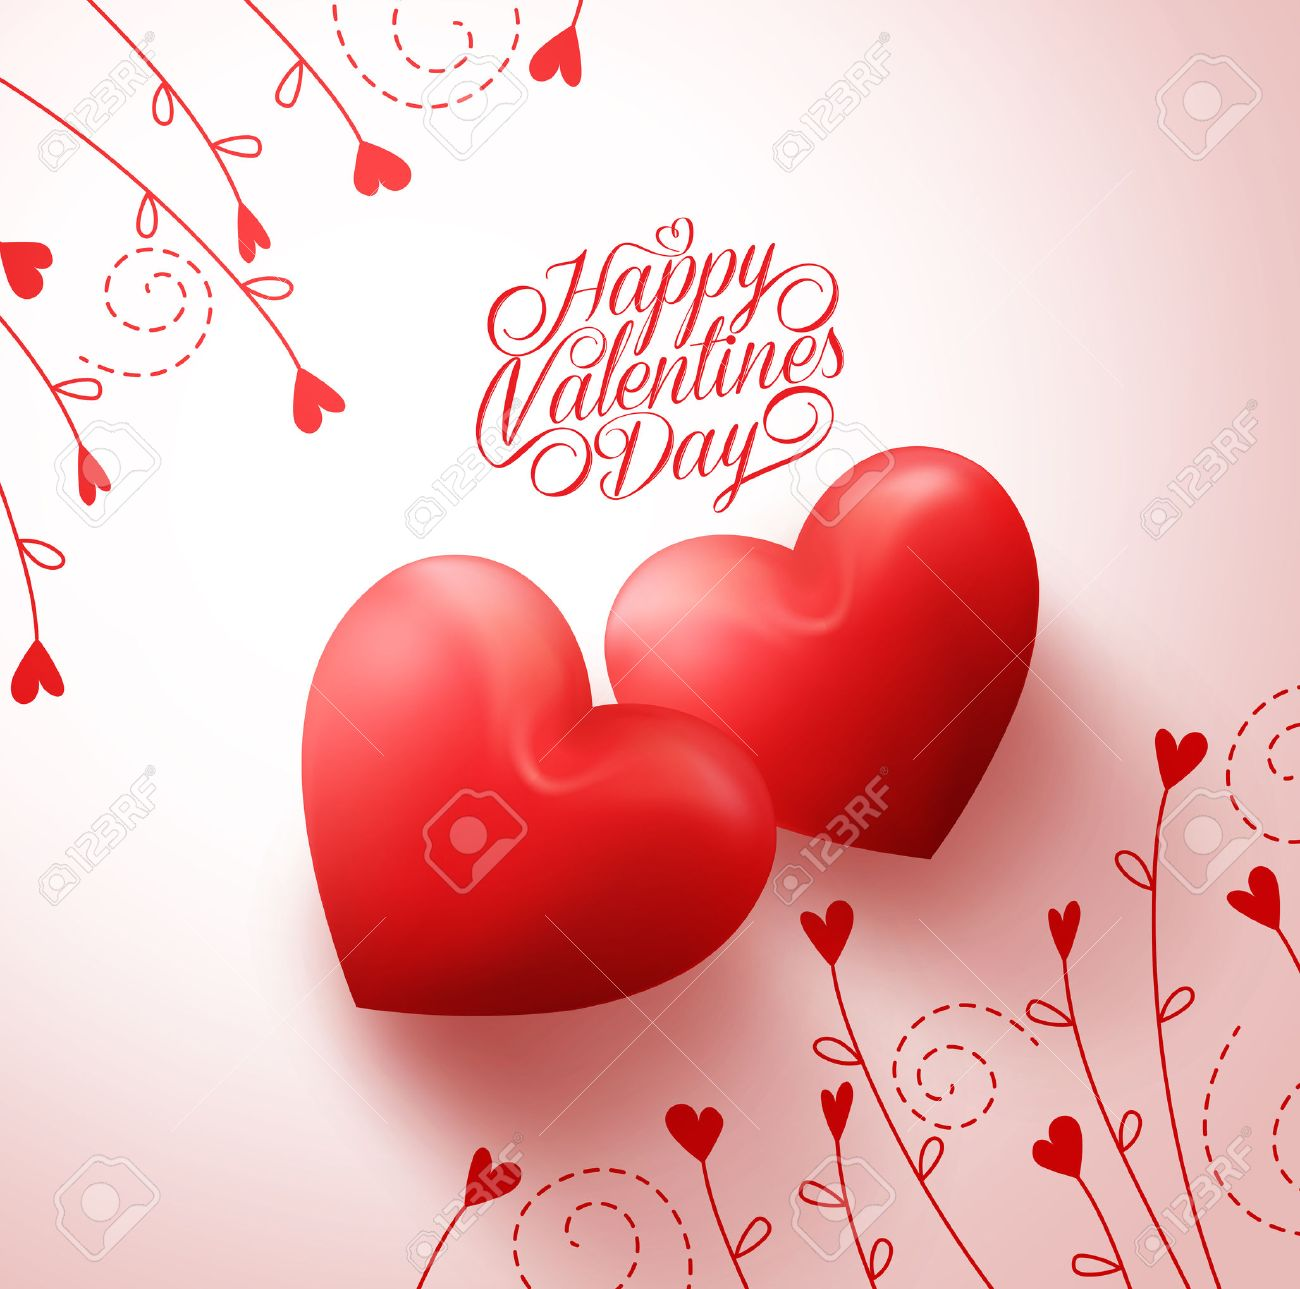 Two Red Hearts for Lovers with Happy Valentines Day Greetings in White Background with Flowers Vine Pattern. Vector Illustration - 50818484